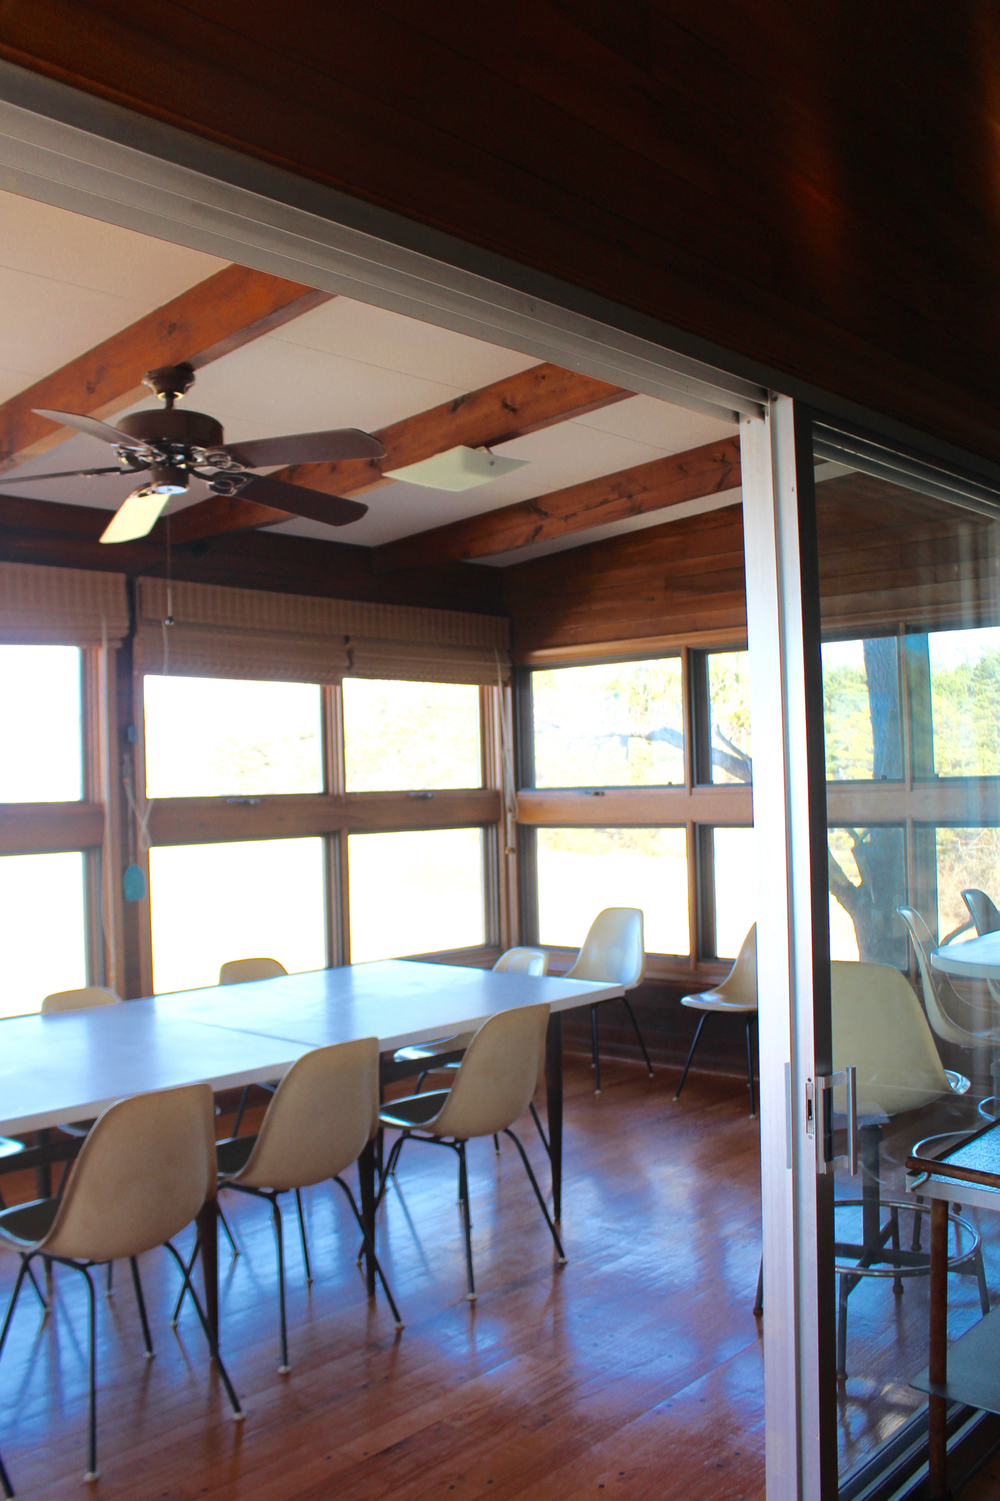 Porch dining room for entertaining large groups of relatives, friends and business associates.